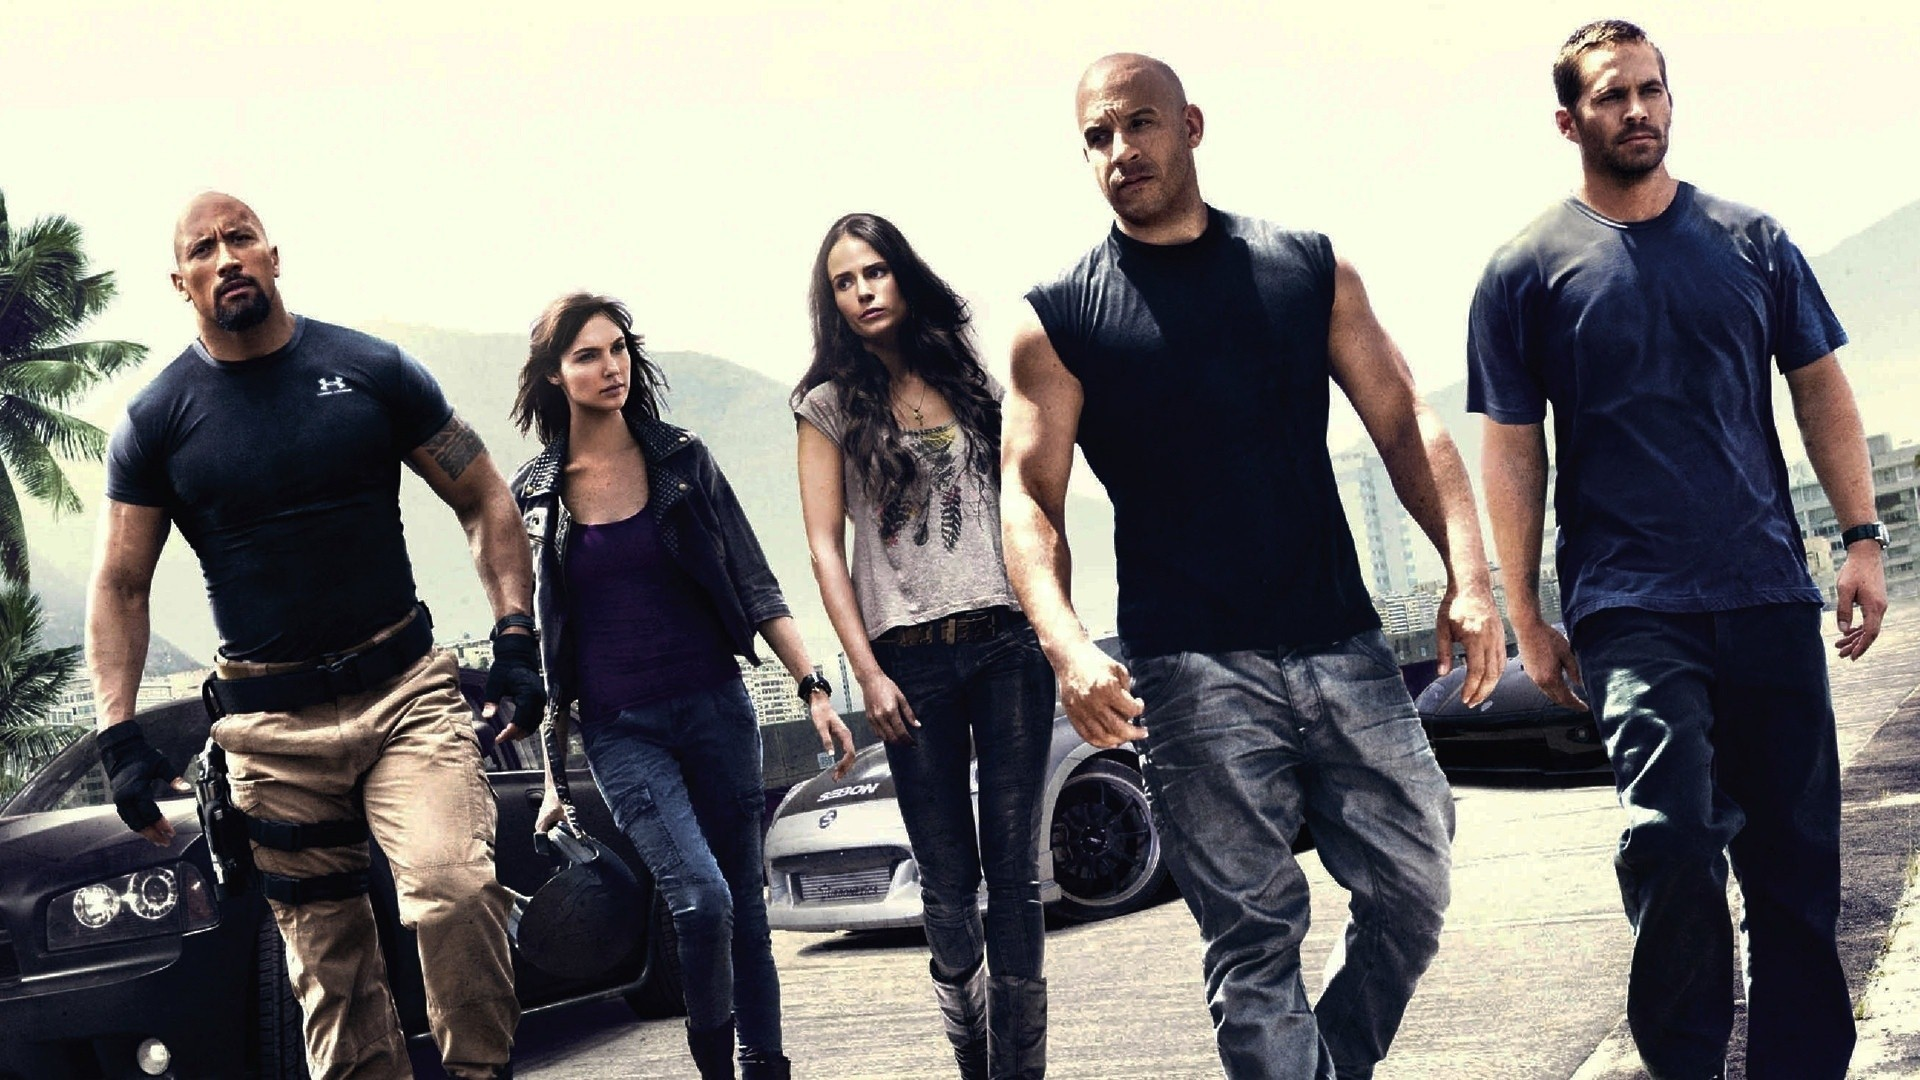 actors of fast and furious movie. Black Bedroom Furniture Sets. Home Design Ideas